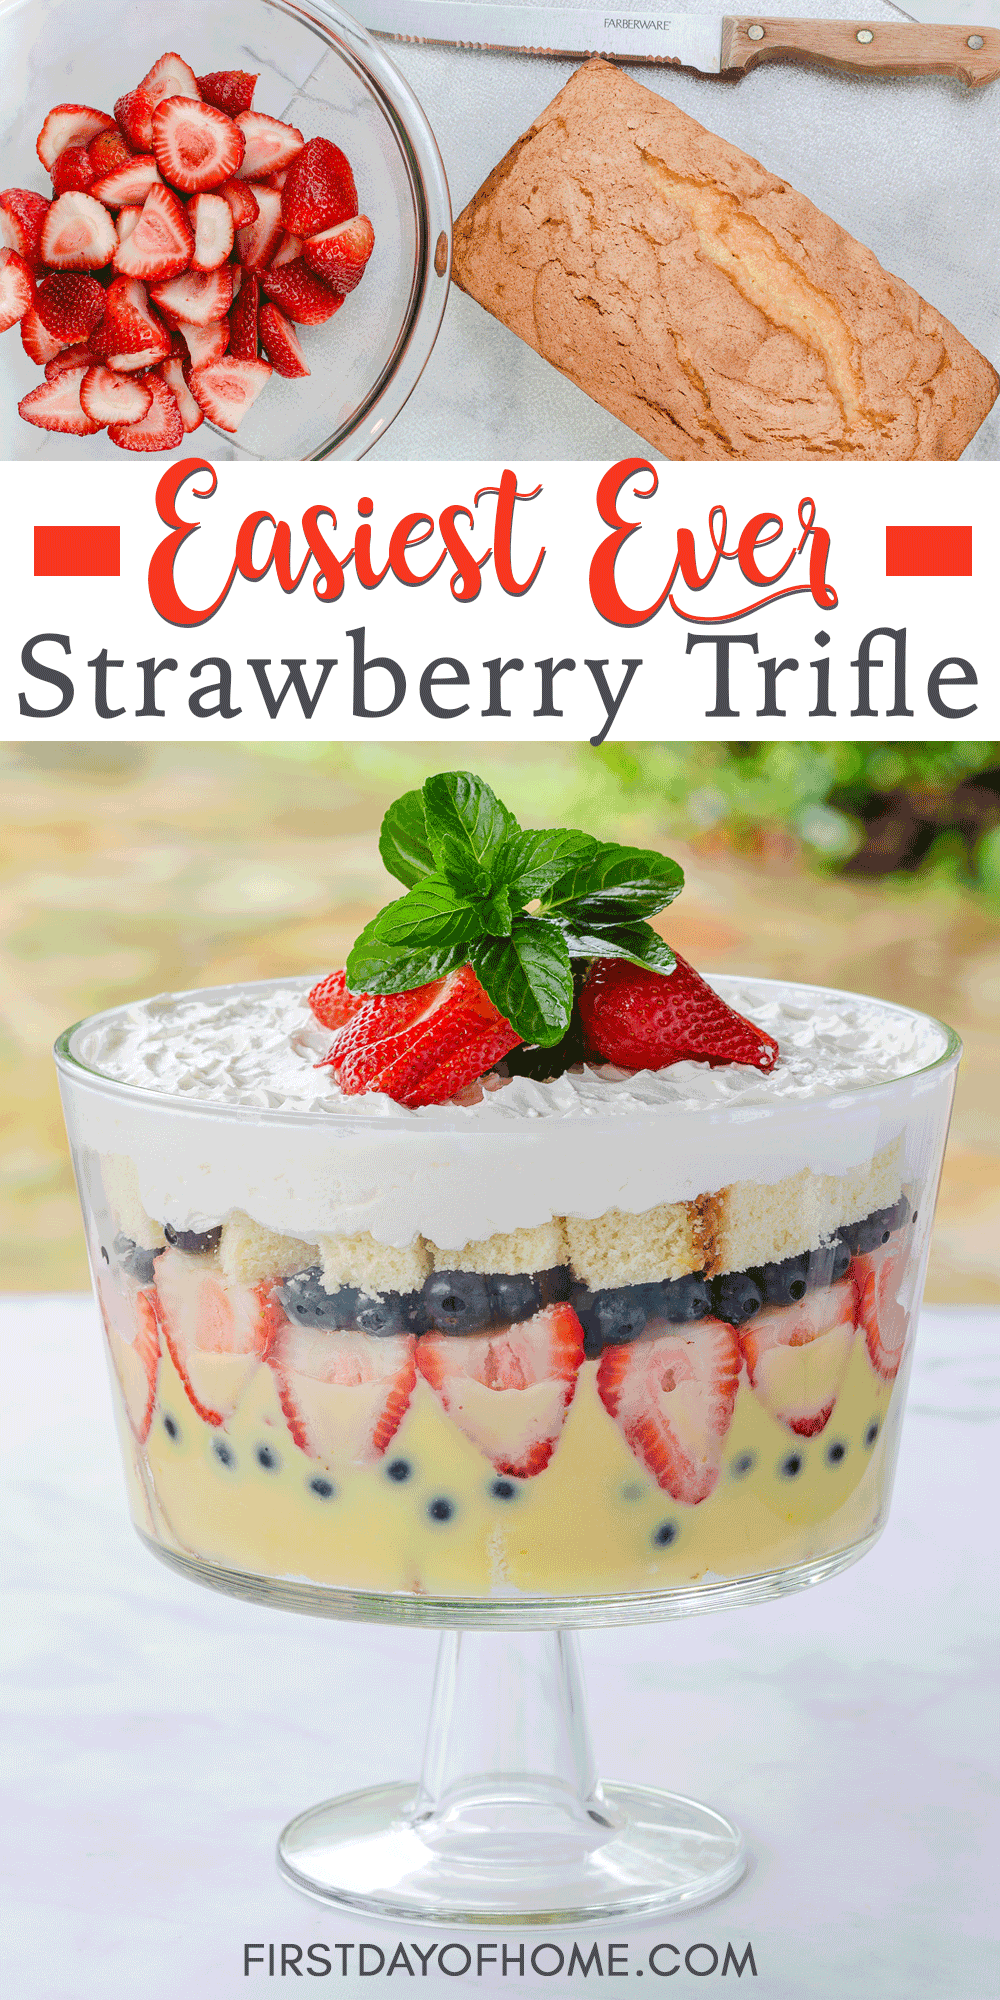 Quick & Easy Strawberry Trifle Dessert